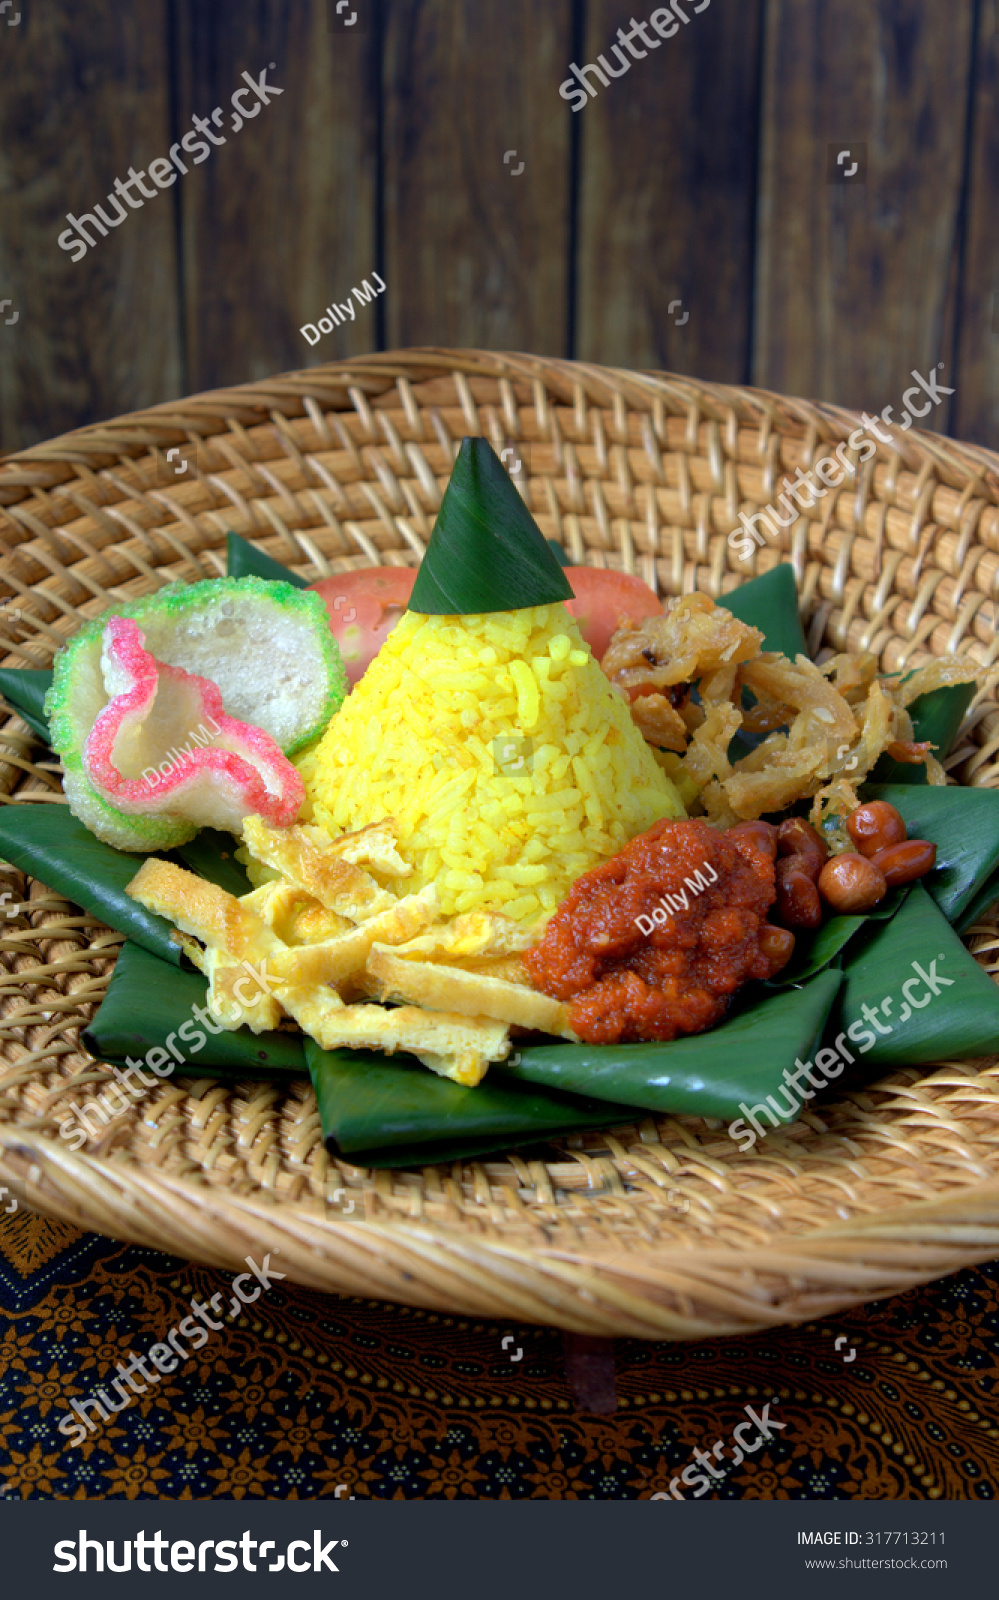 Royalty Free Nasi Kuning Or Kunyit Popular 317713211 Stock Indonesian Cuisine With Coconut Milk And Turmeric The Rice Looks Like A Pile Of Gold Often Served At Parties